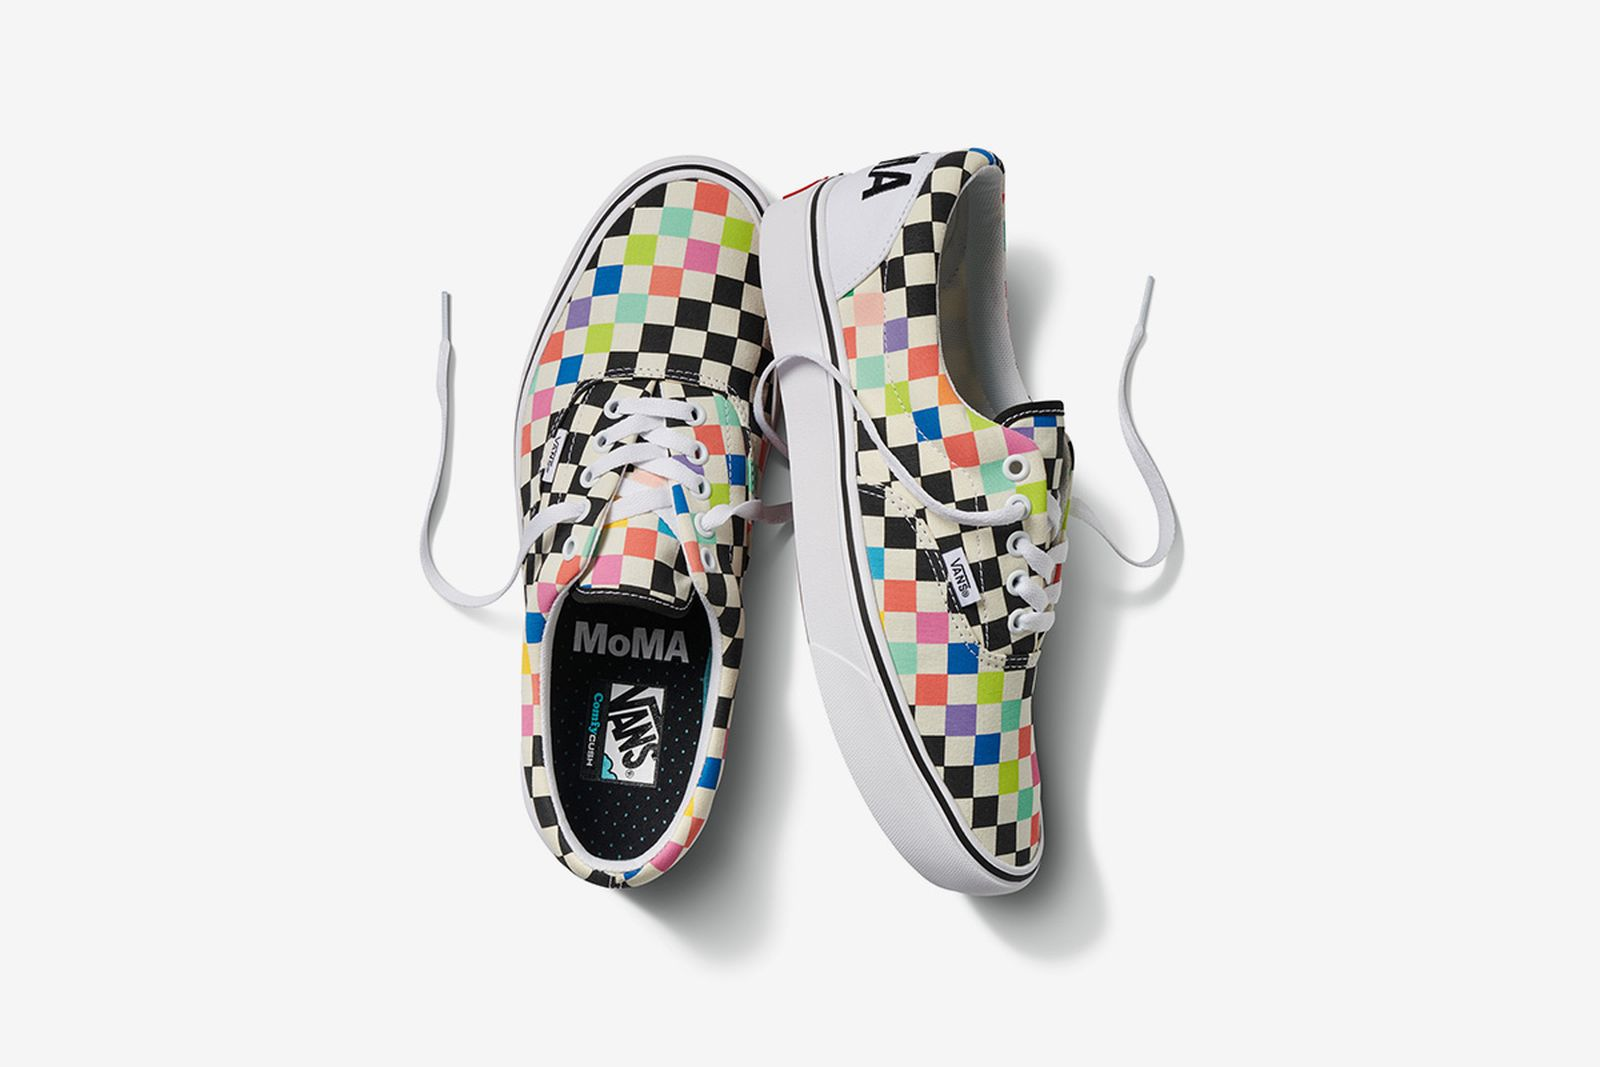 vans-moma-fall-2020-release-date-price-1-03